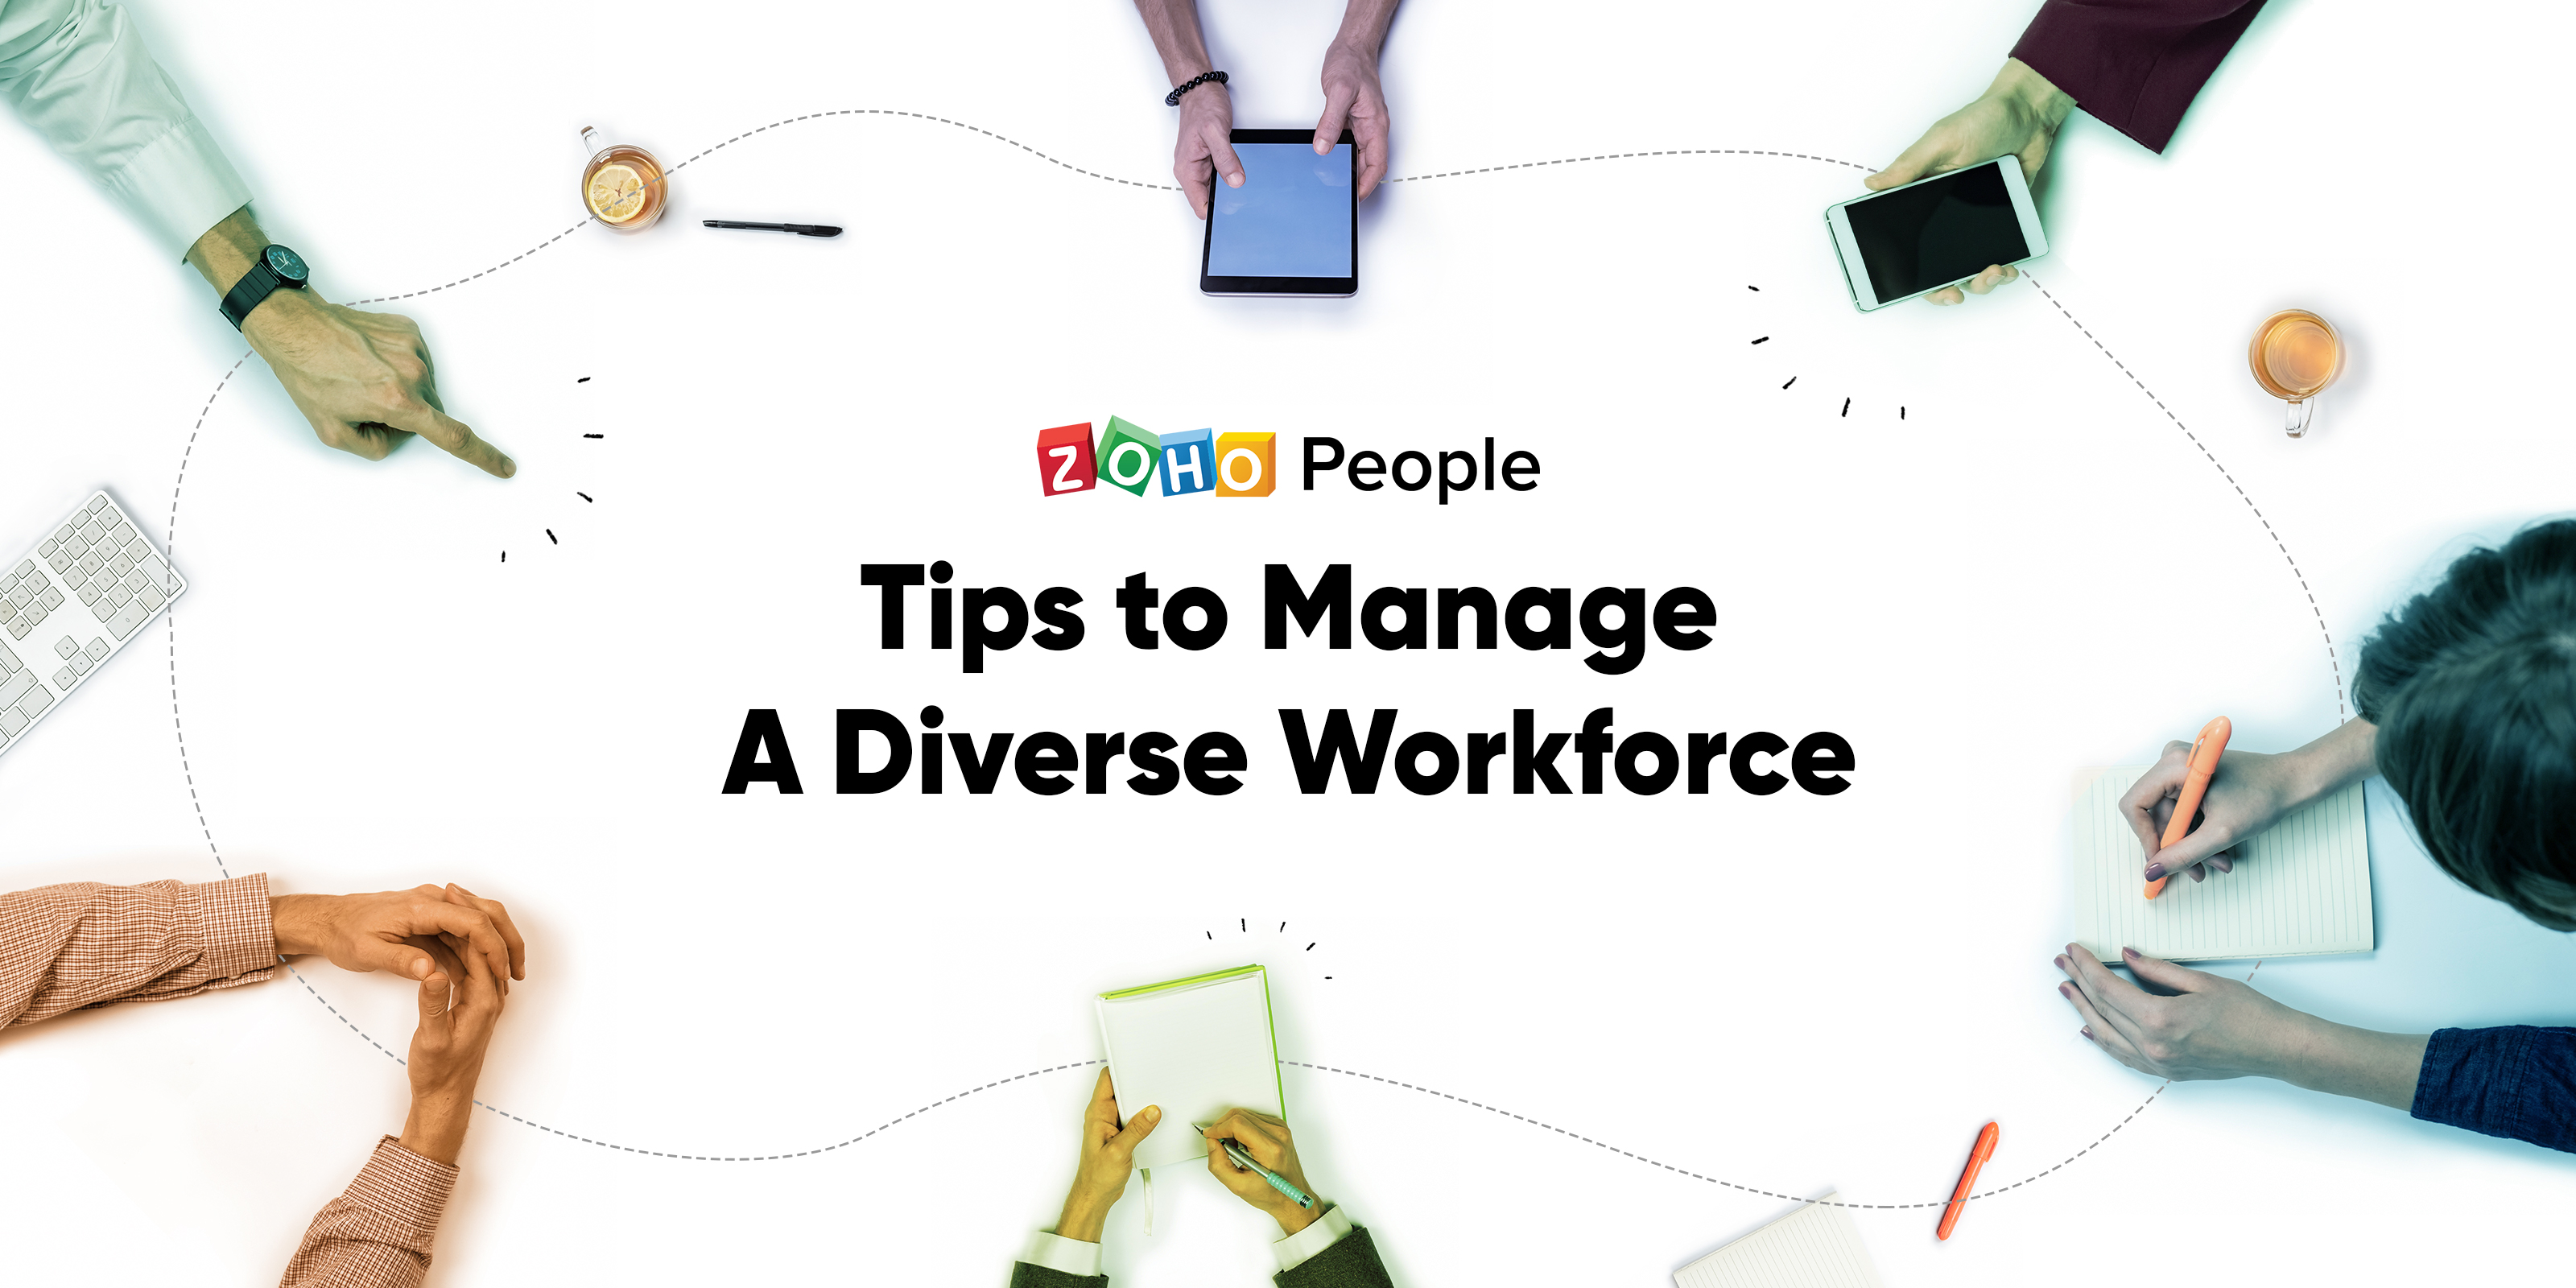 6 tips to manage a diverse workforce